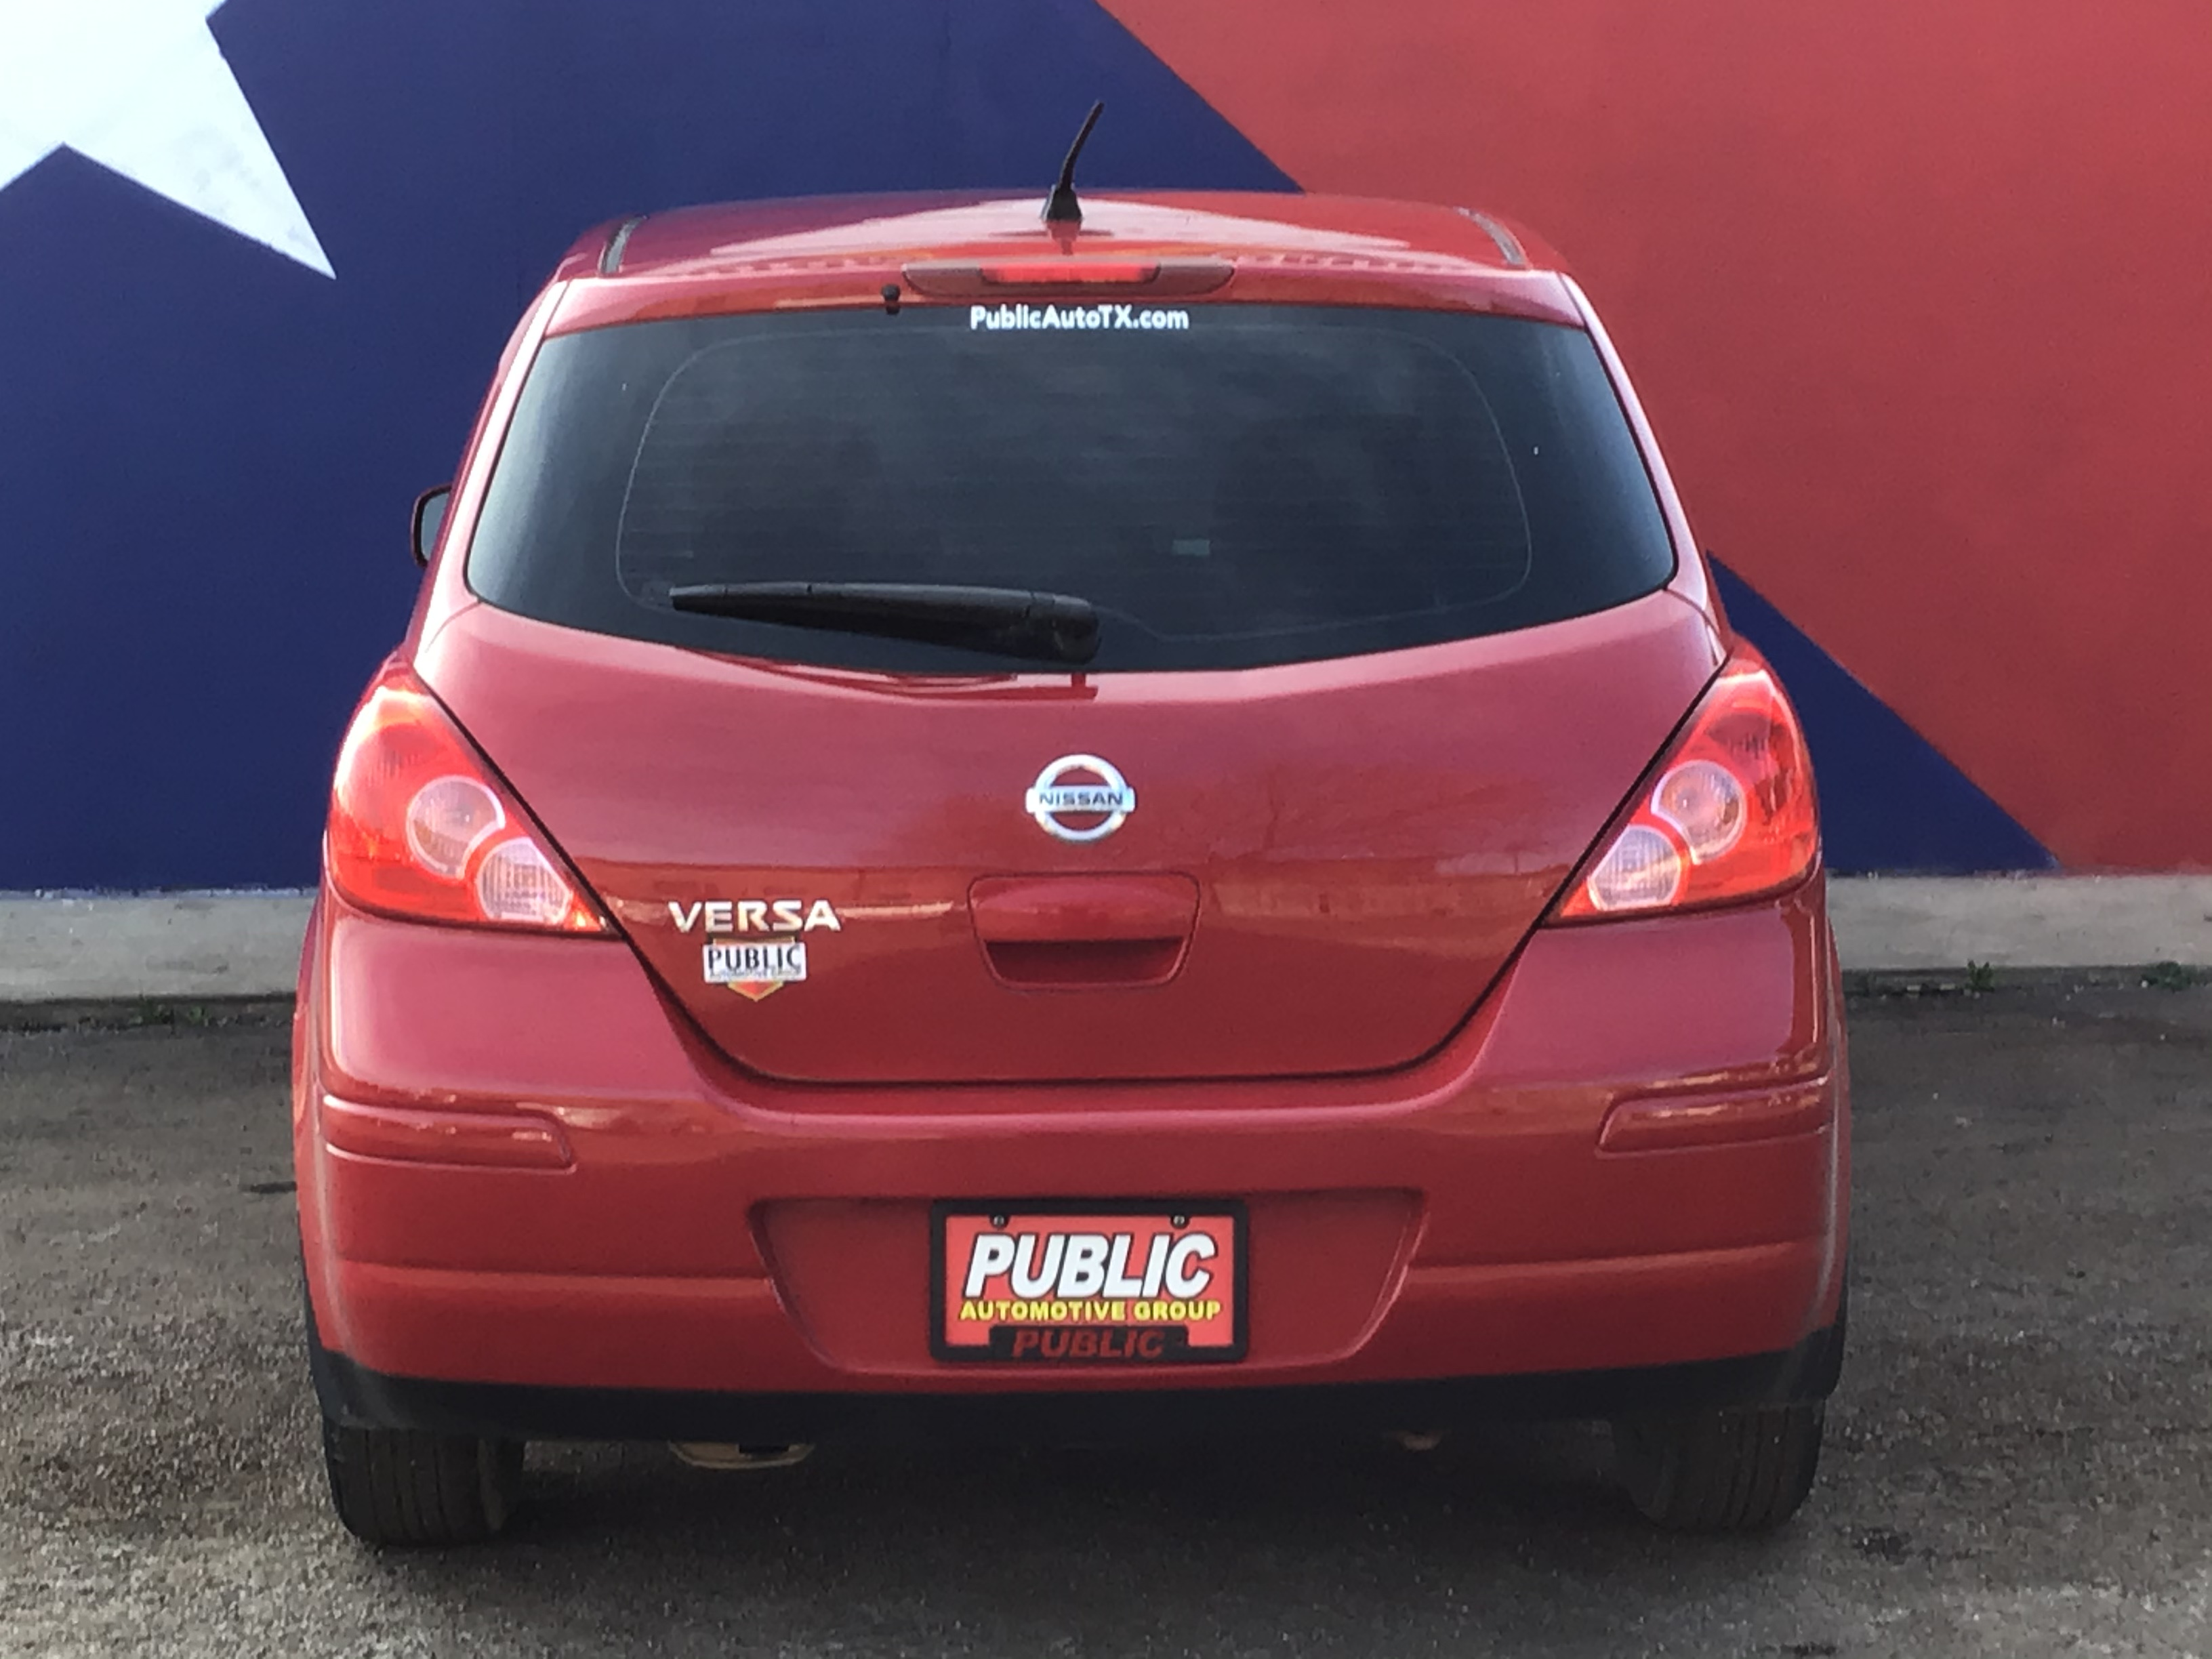 used vehicle - Sedan NISSAN VERSA 2011